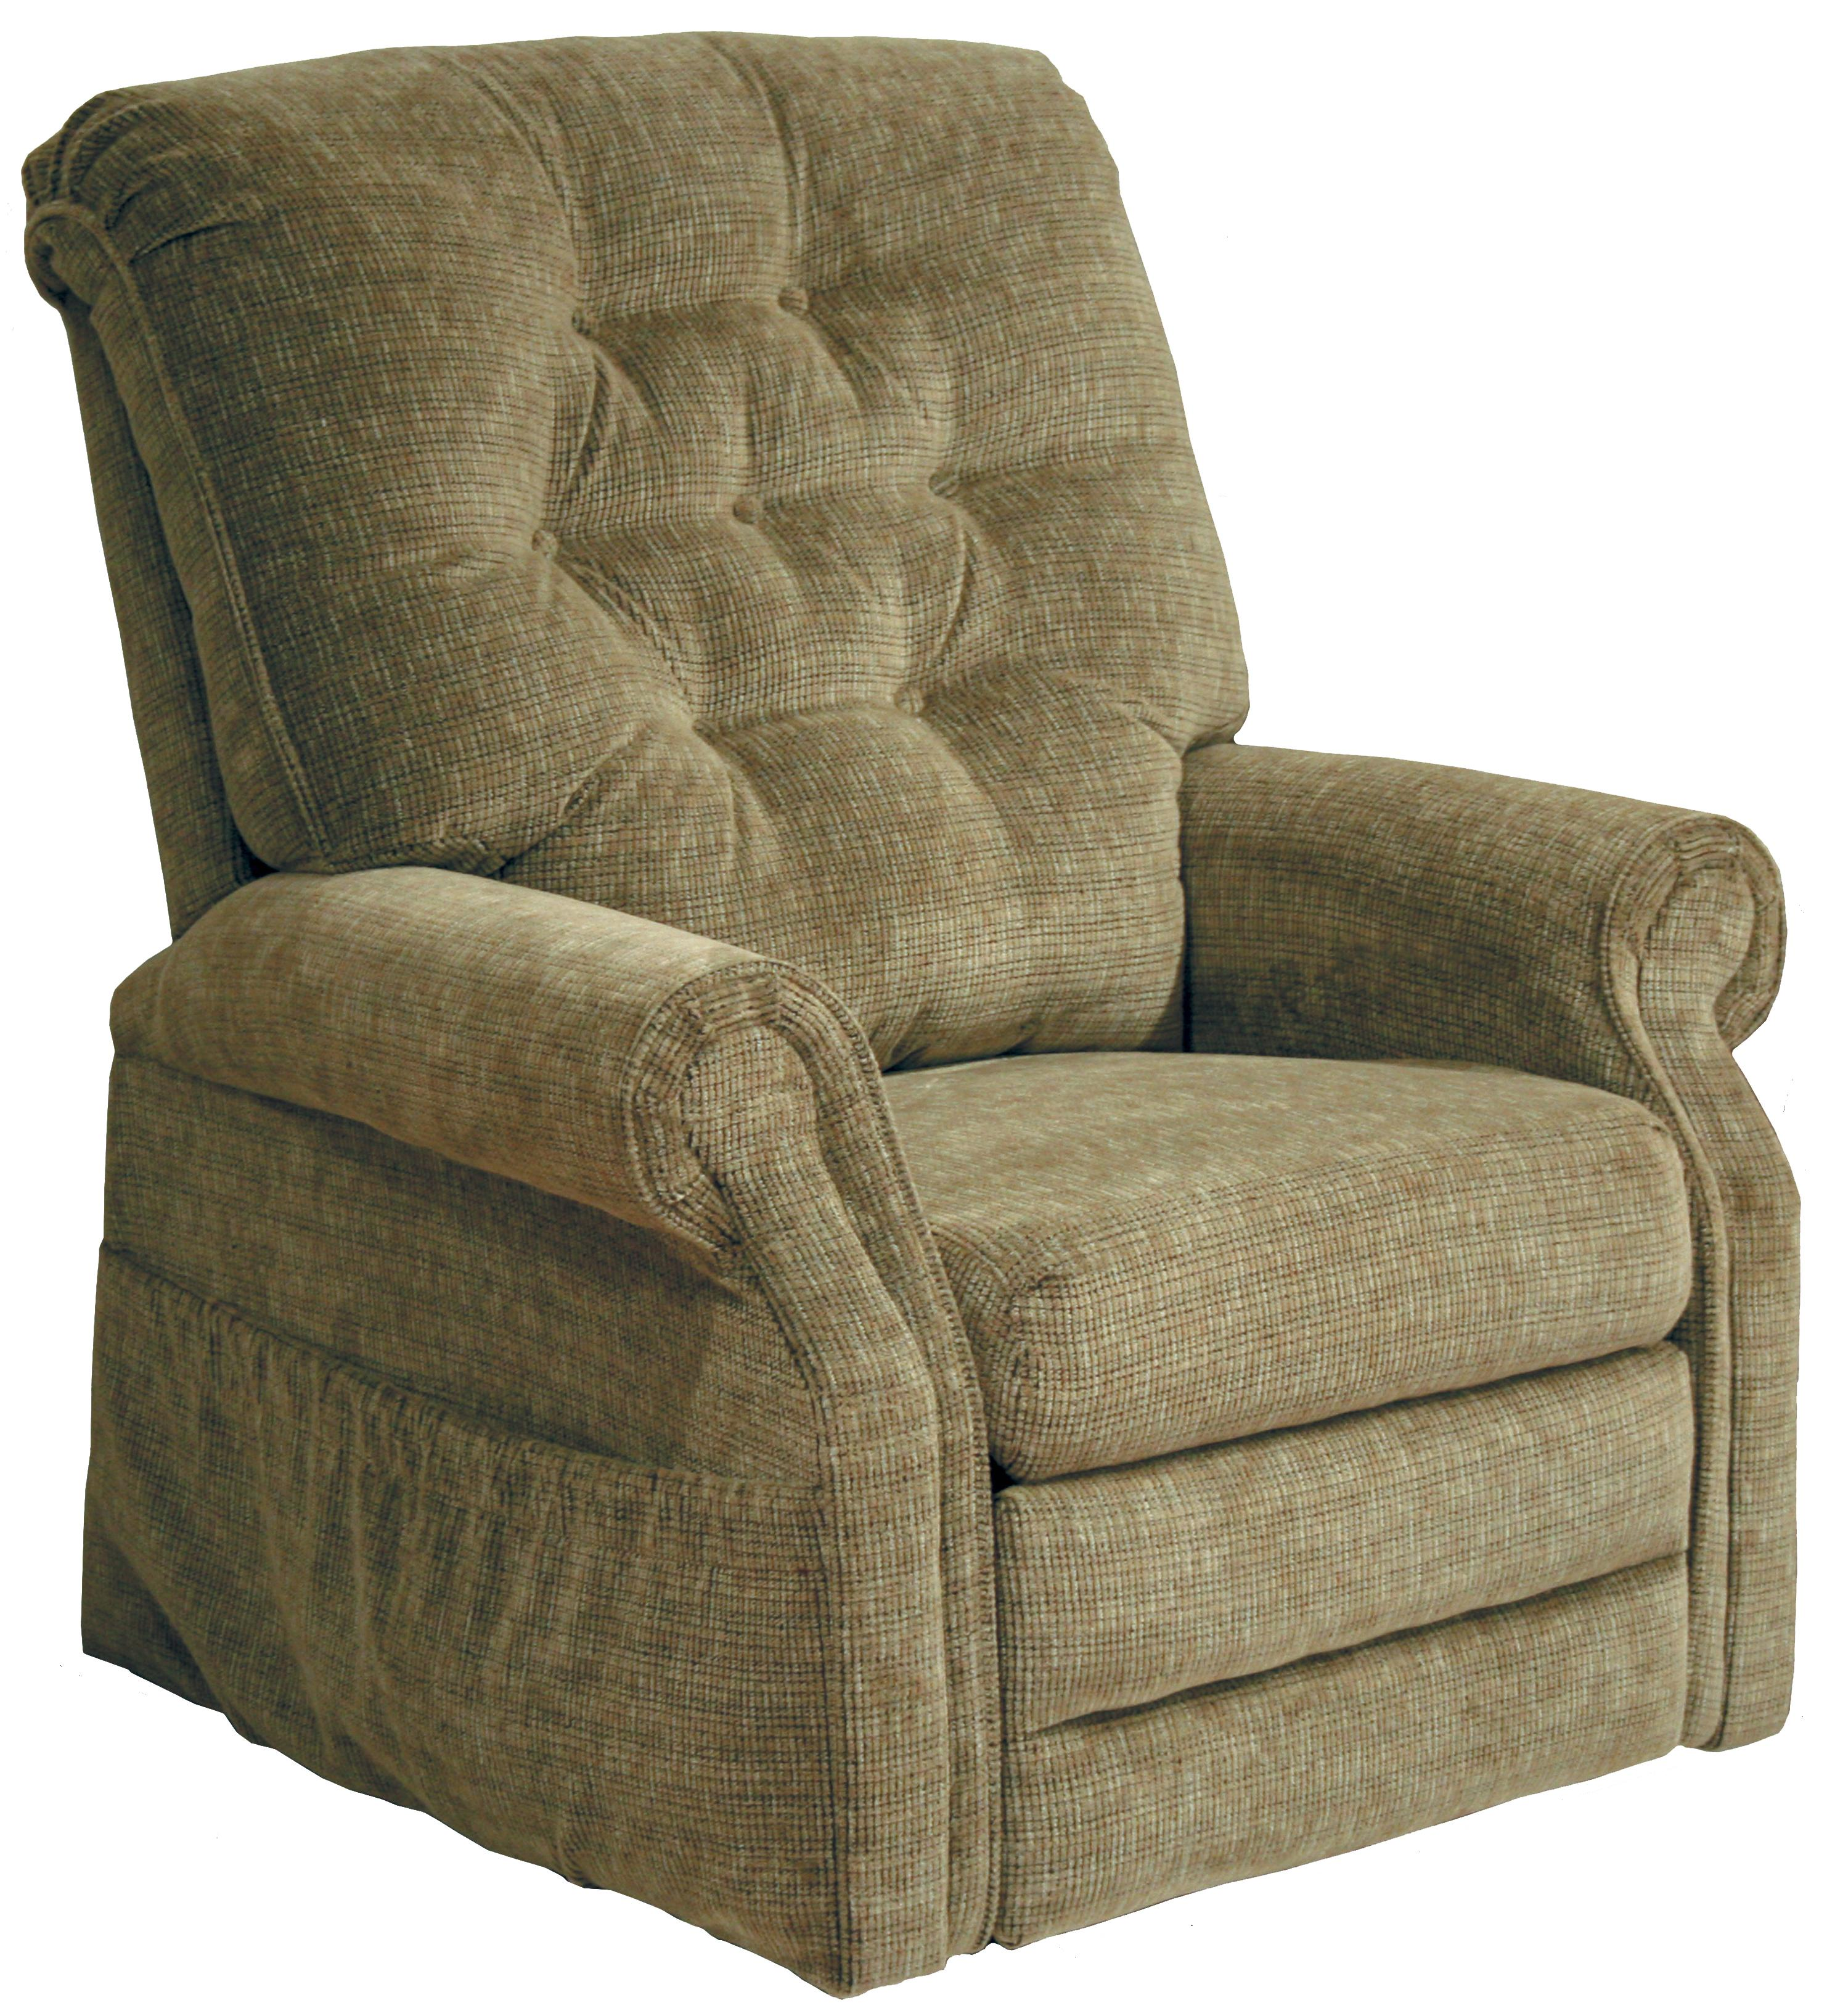 "Patriot 4824 ""Pow'r Lift"" Recliner by Catnapper at Lapeer Furniture & Mattress Center"